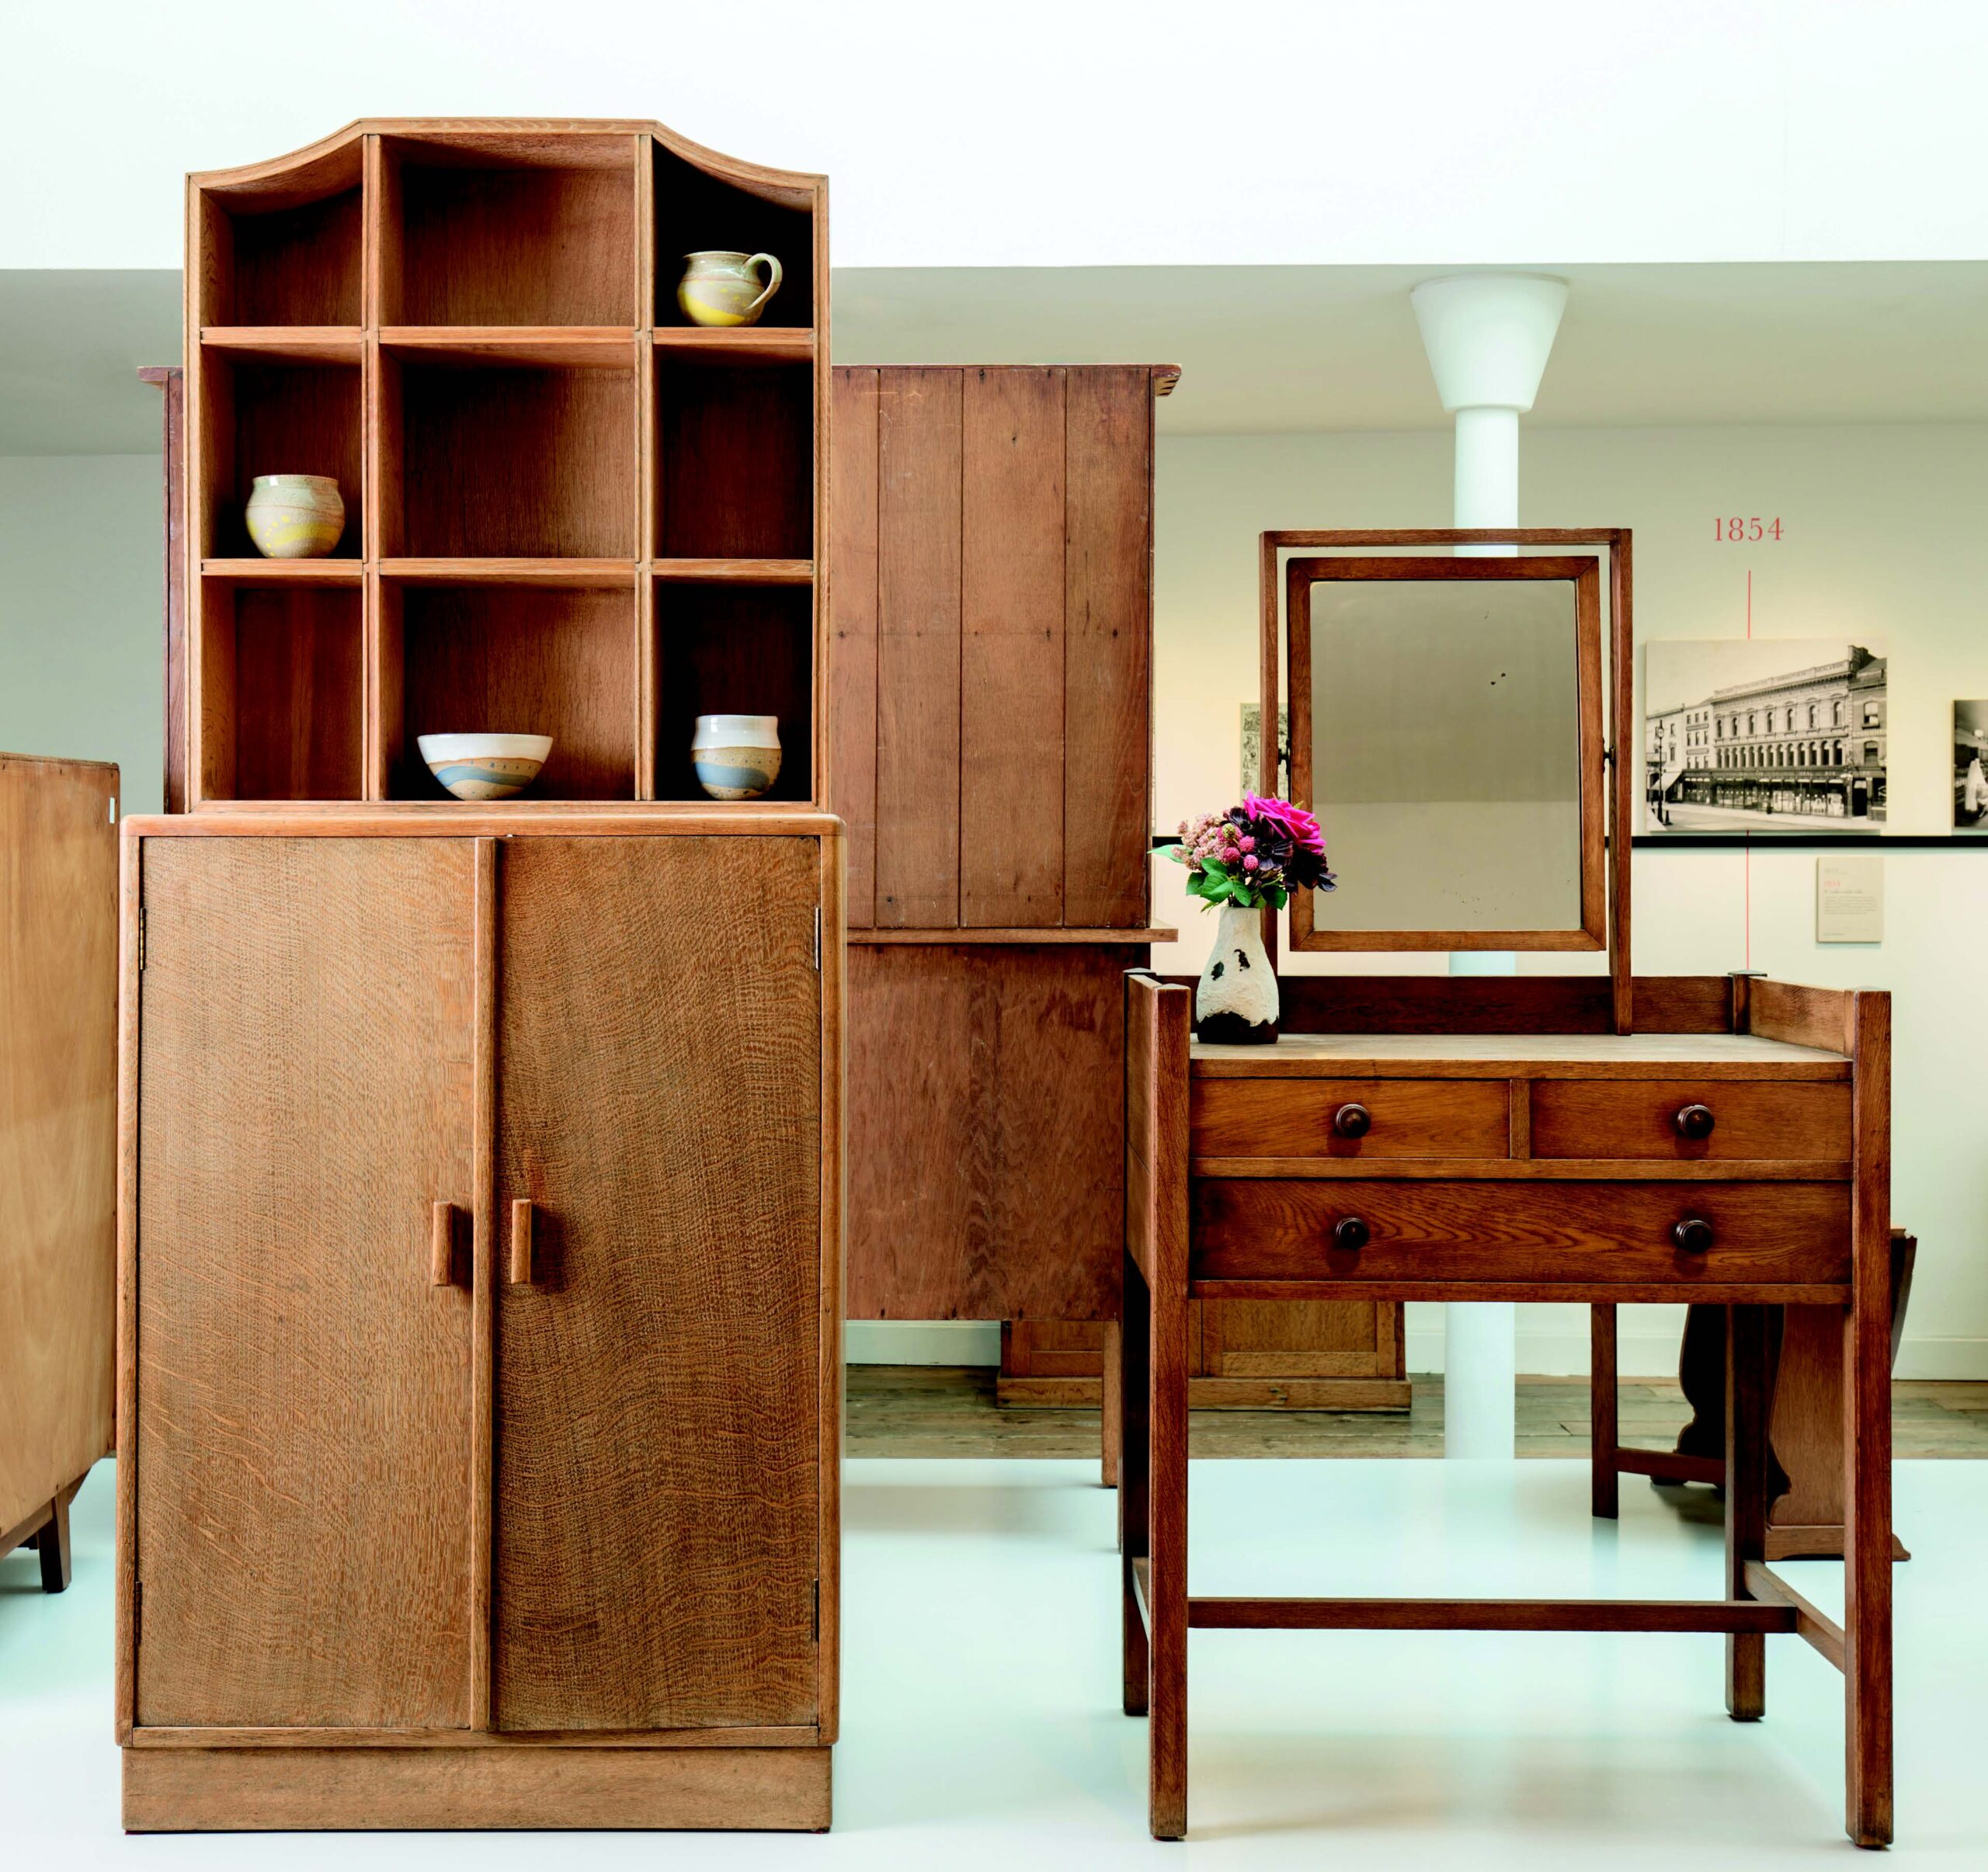 Limed oak furniture from Heal's